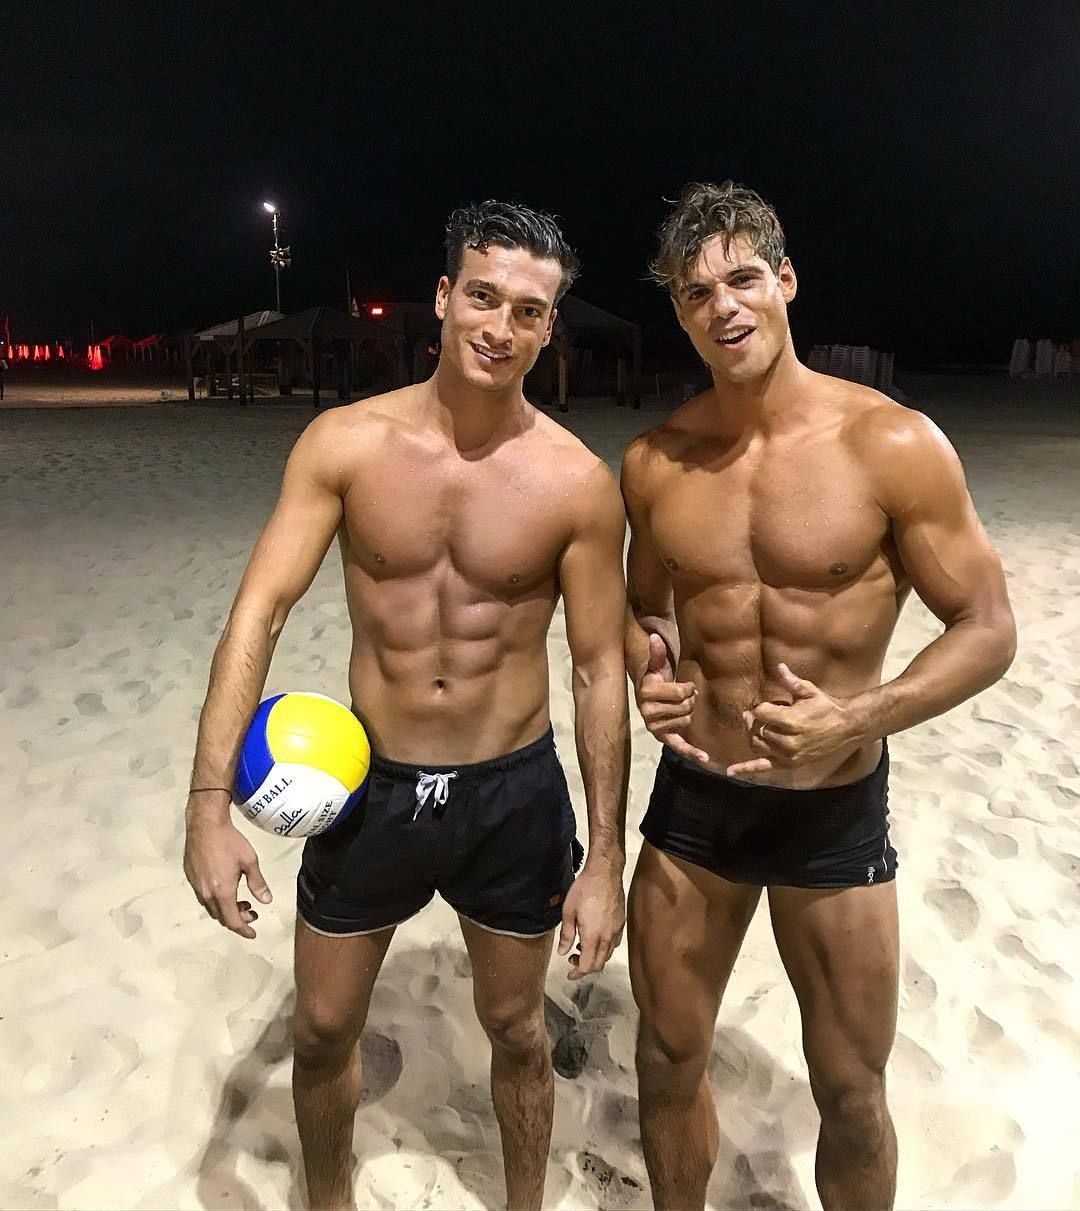 Beach Volleyball In 2020 Handsome Men Olympic Athletes Men Kissing